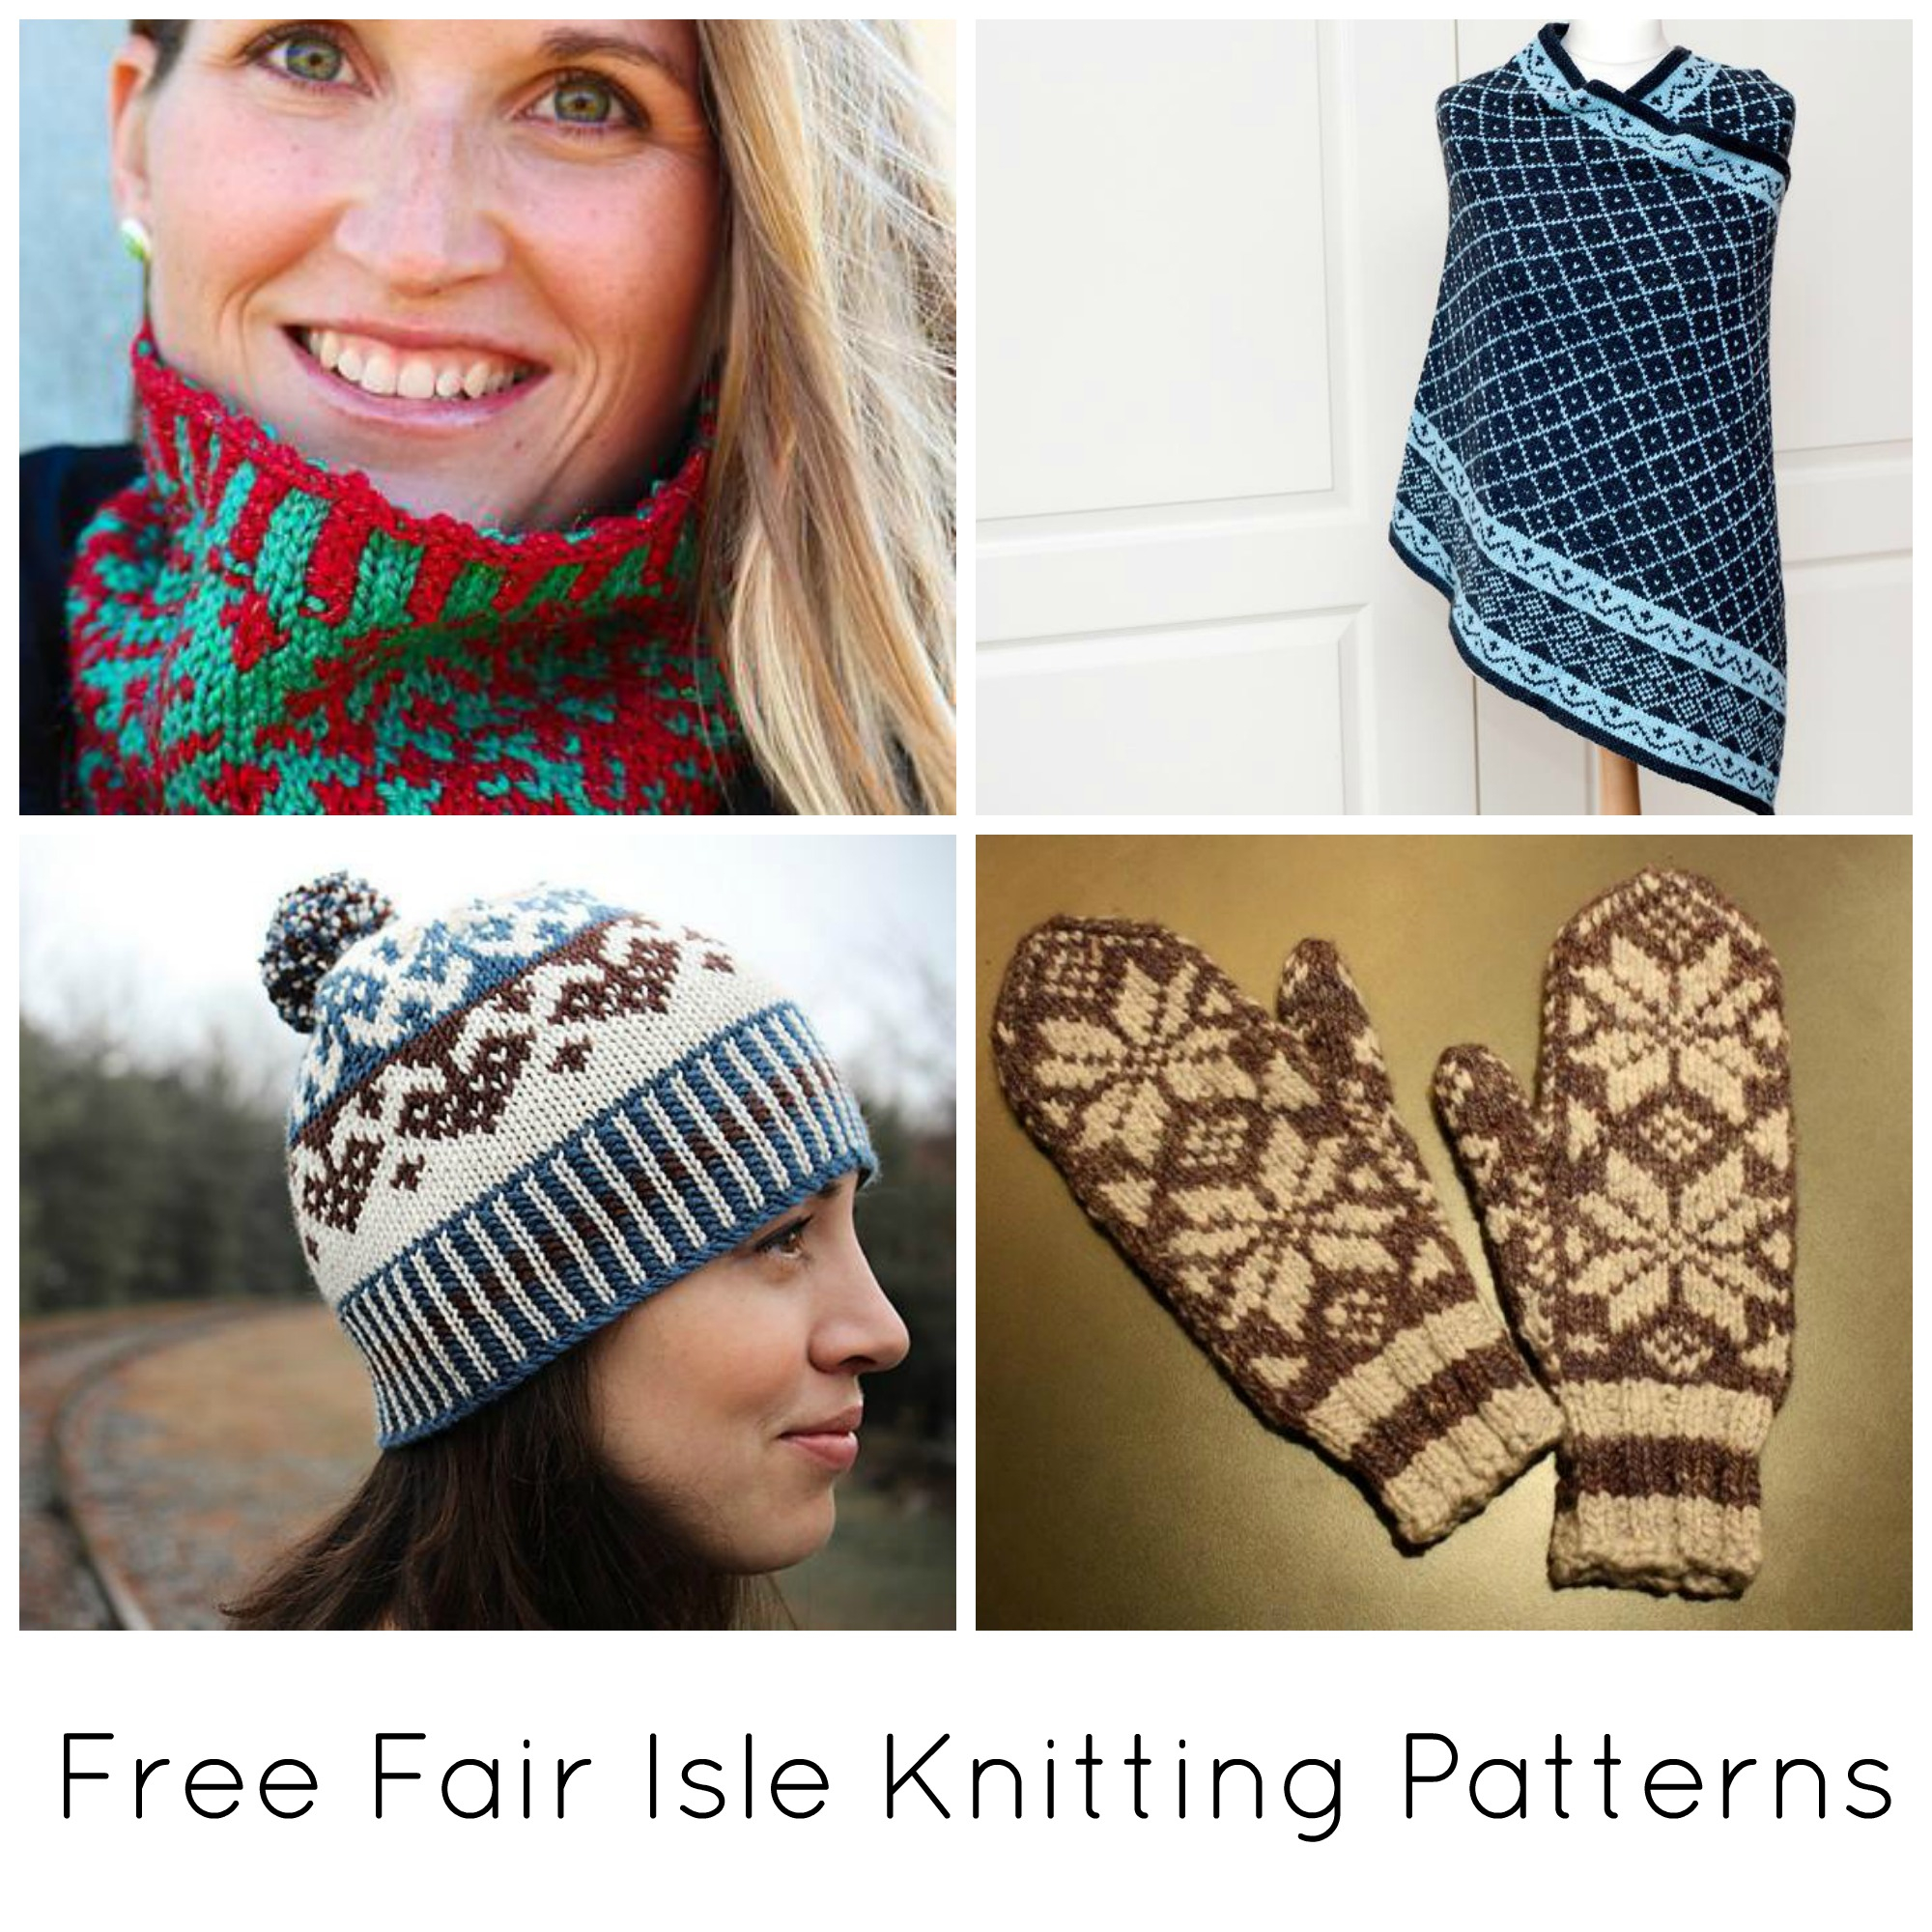 Stranded Knitting Patterns Free 10 Free Fair Isle Knitting Patterns On Craftsy